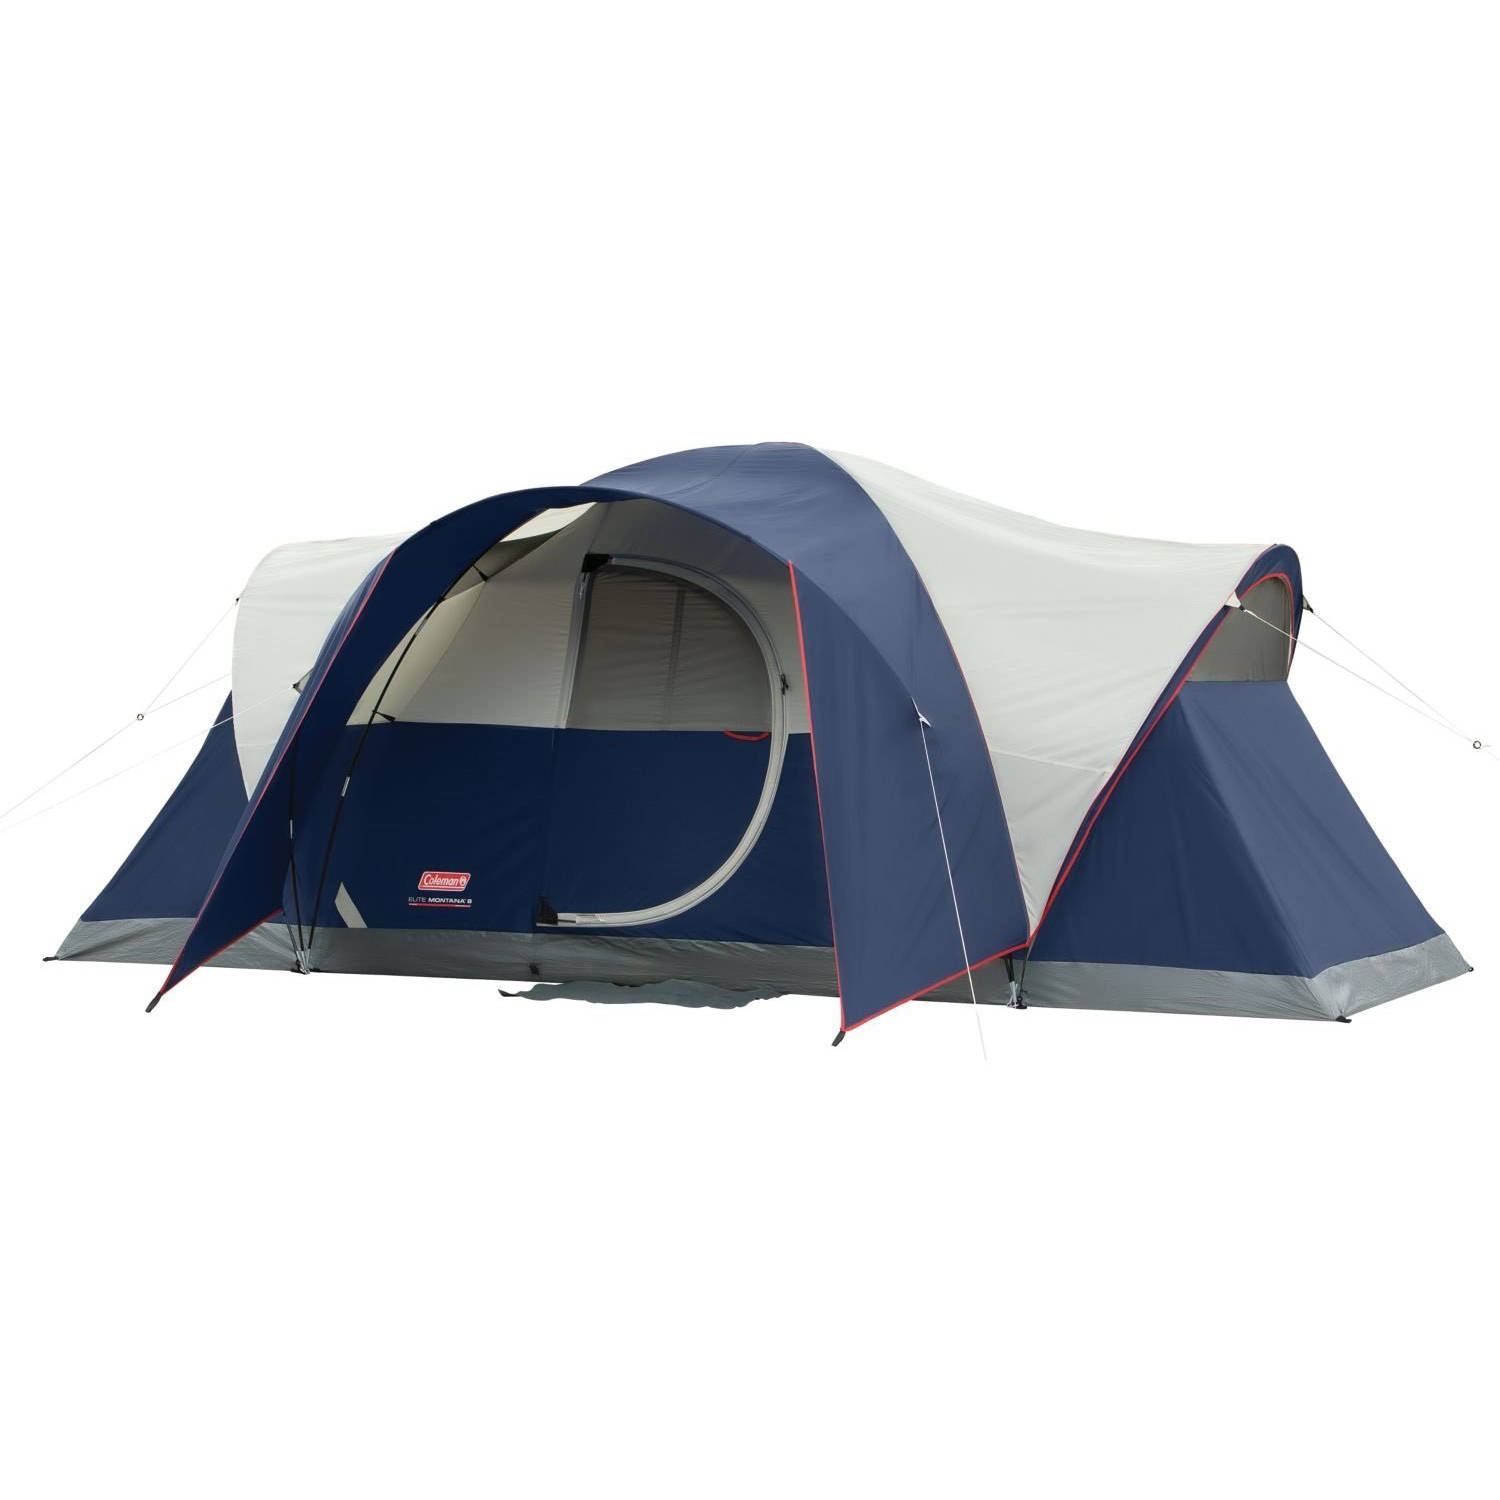 Coleman Elite Montana 8-Person Dome Tent with LED Light  sc 1 st  Walmart.com & Coleman Elite Montana 8-Person Dome Tent with LED Light - Walmart.com